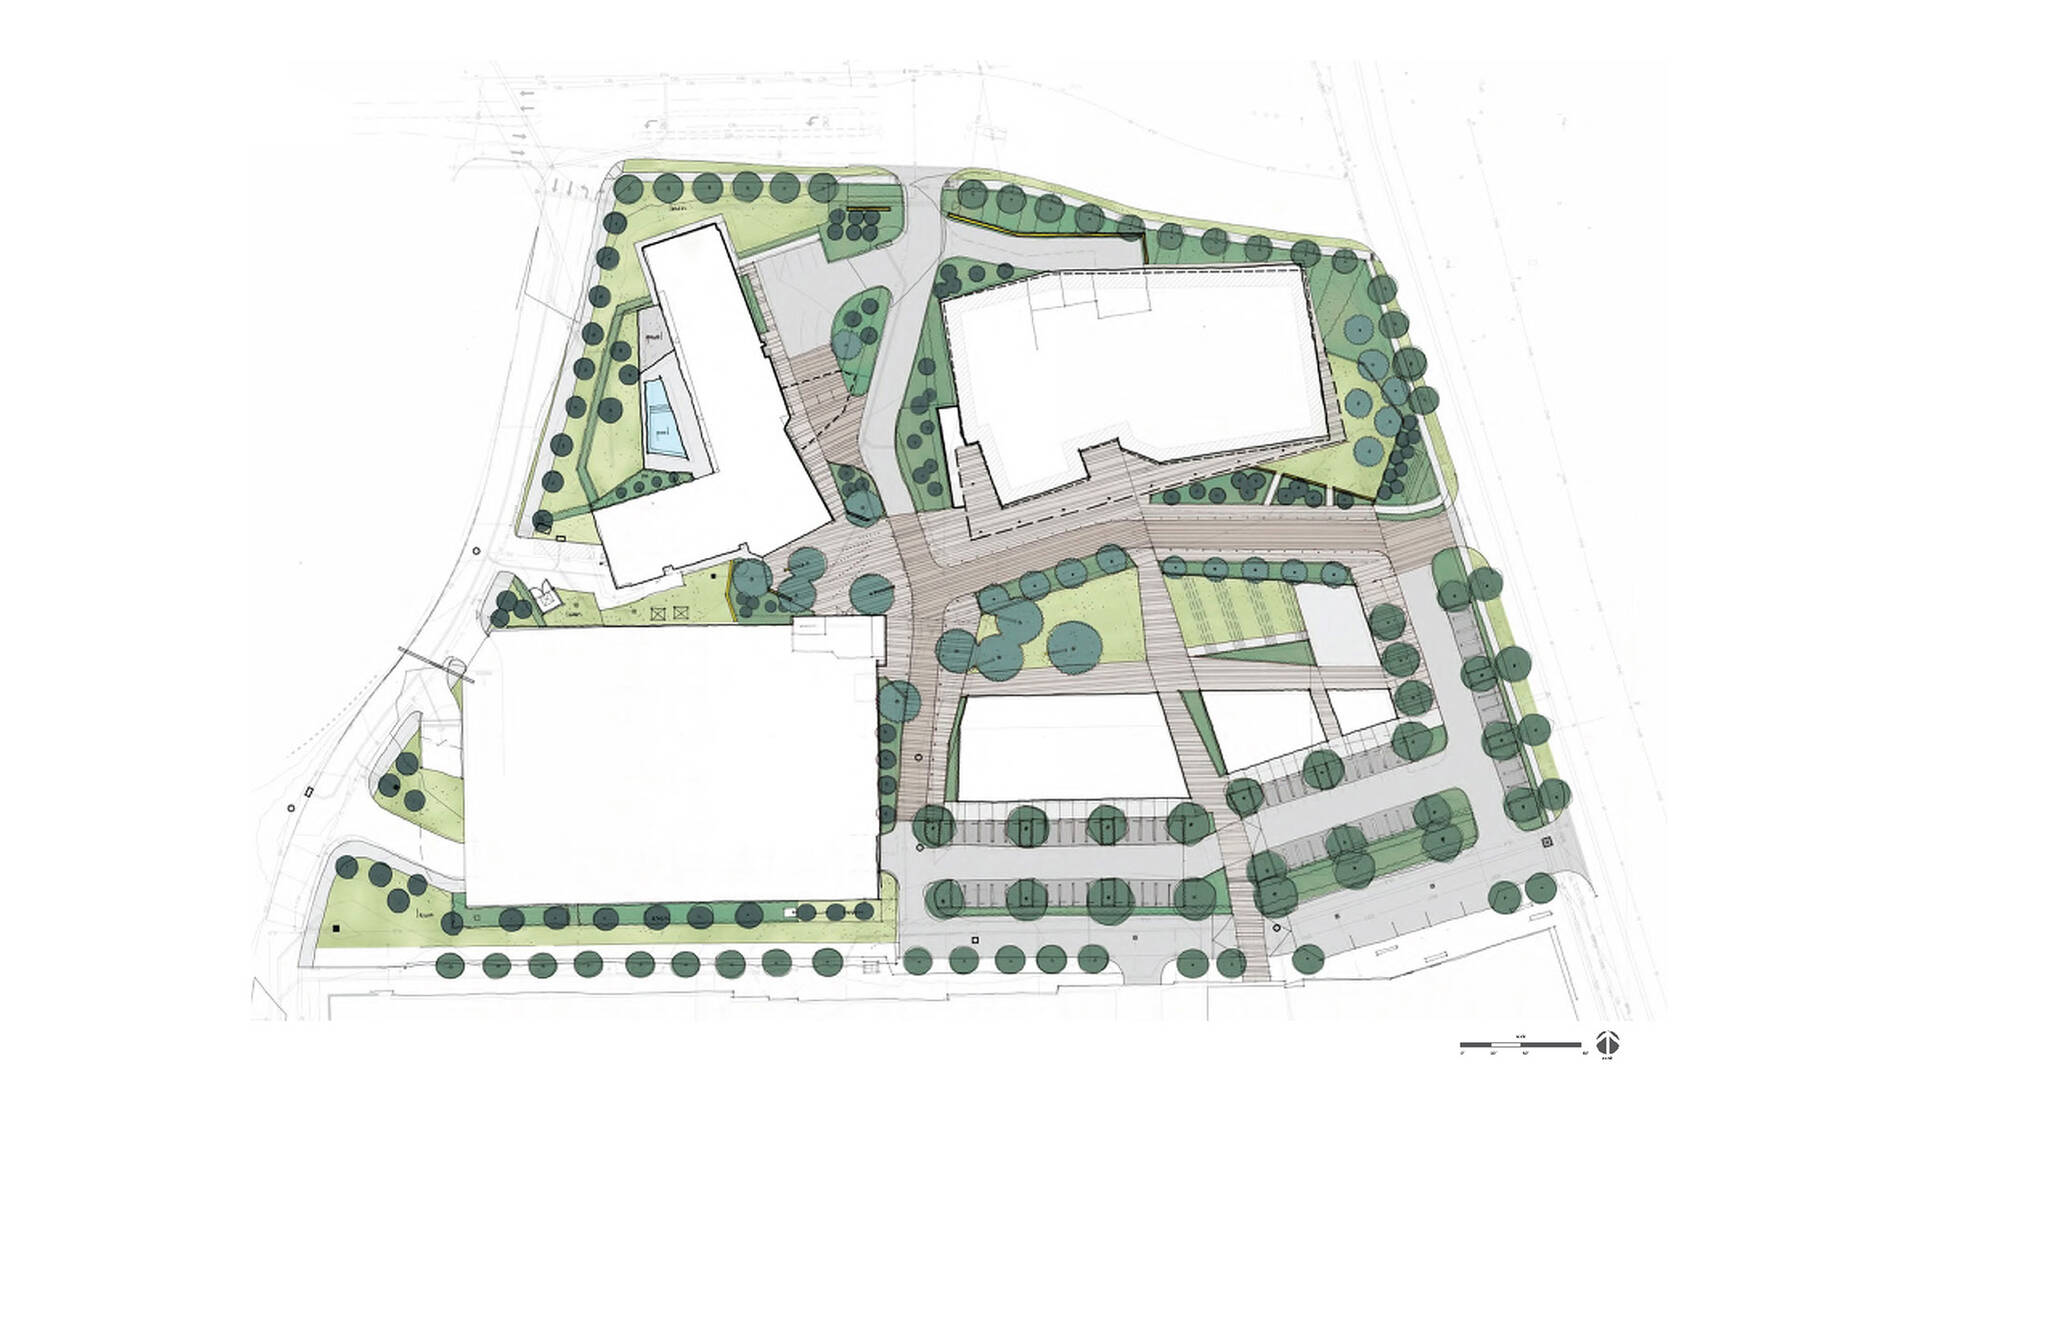 Site plan diagram of the Dallas Alpha West mixed-use complex project located in Dallas, Texas designed by the architecture studio Danny Forster & Architecture